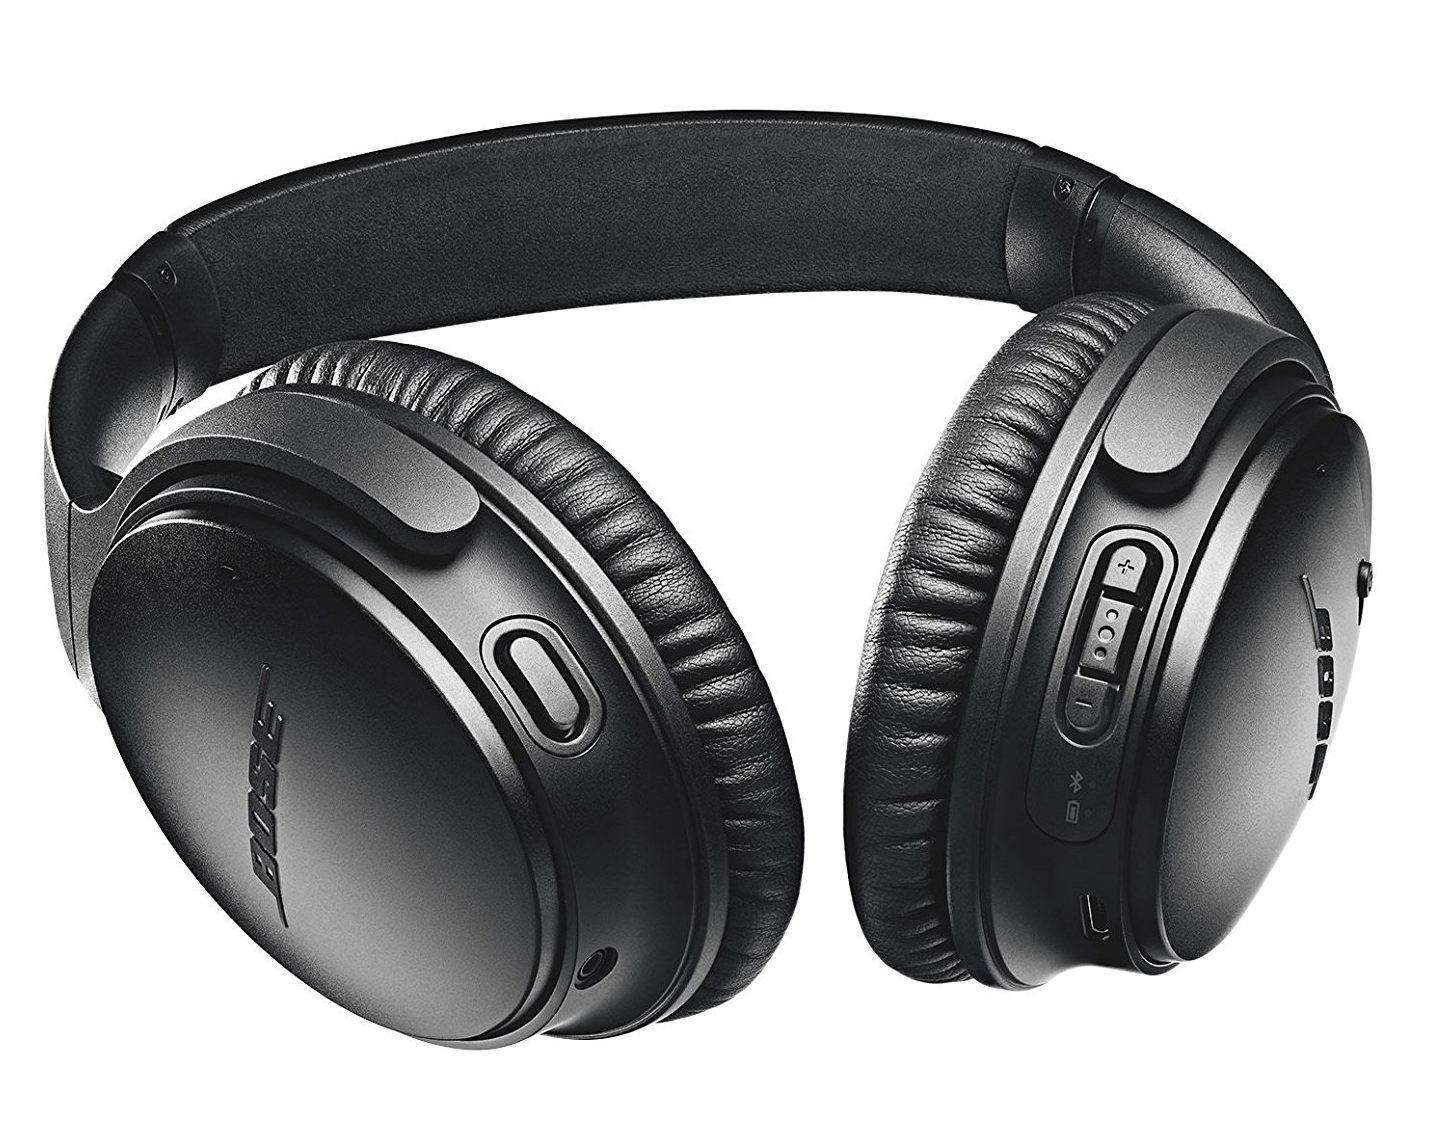 Bose QC 35 II headphones